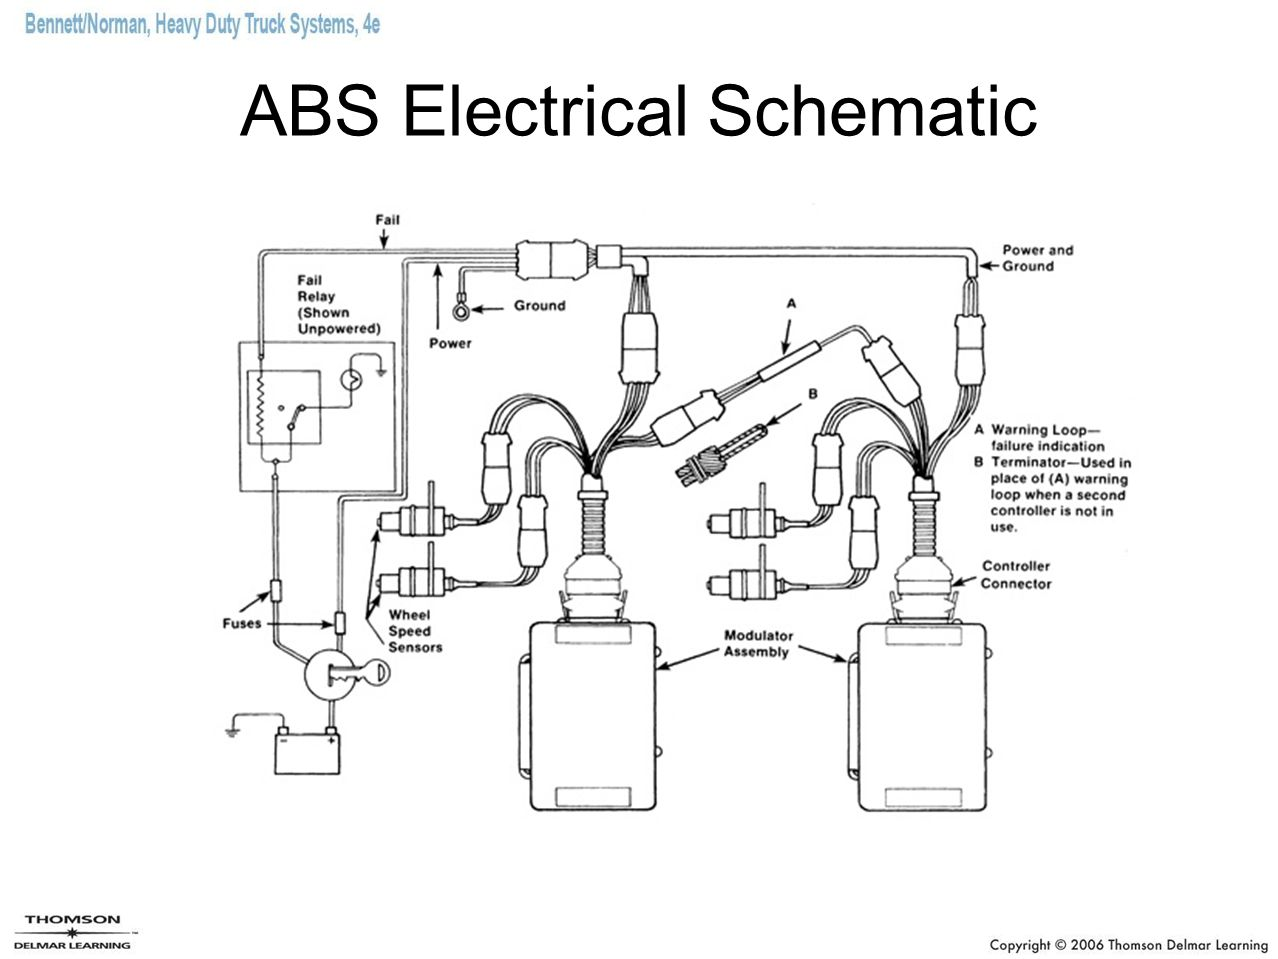 chapter 30 abs and ebs ppt video online download rh slideplayer com kelsey hayes abs wiring schematic ABS Pipe Fittings Product